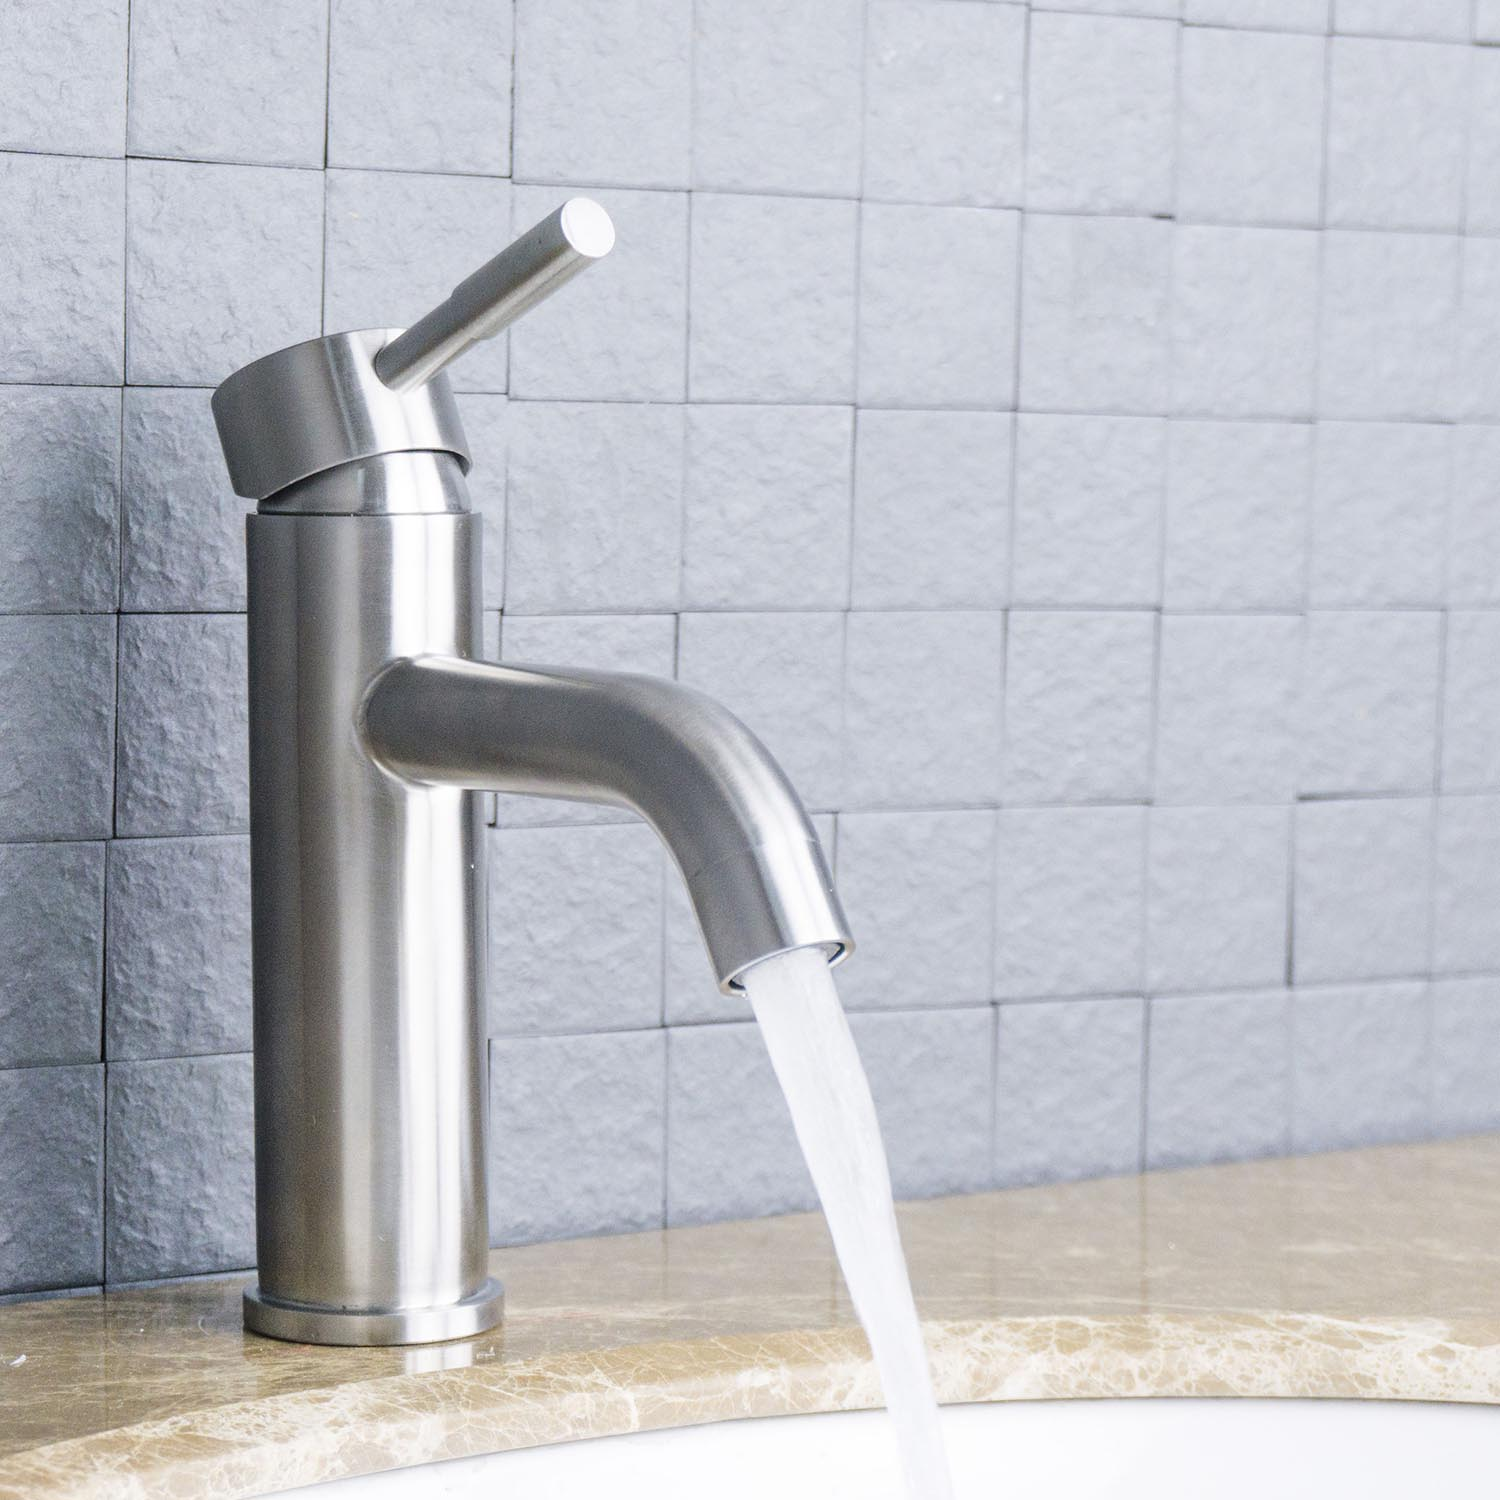 Eviva Ramo Single Hole One Handle Bathroom Faucet in Brushed Nickel ...